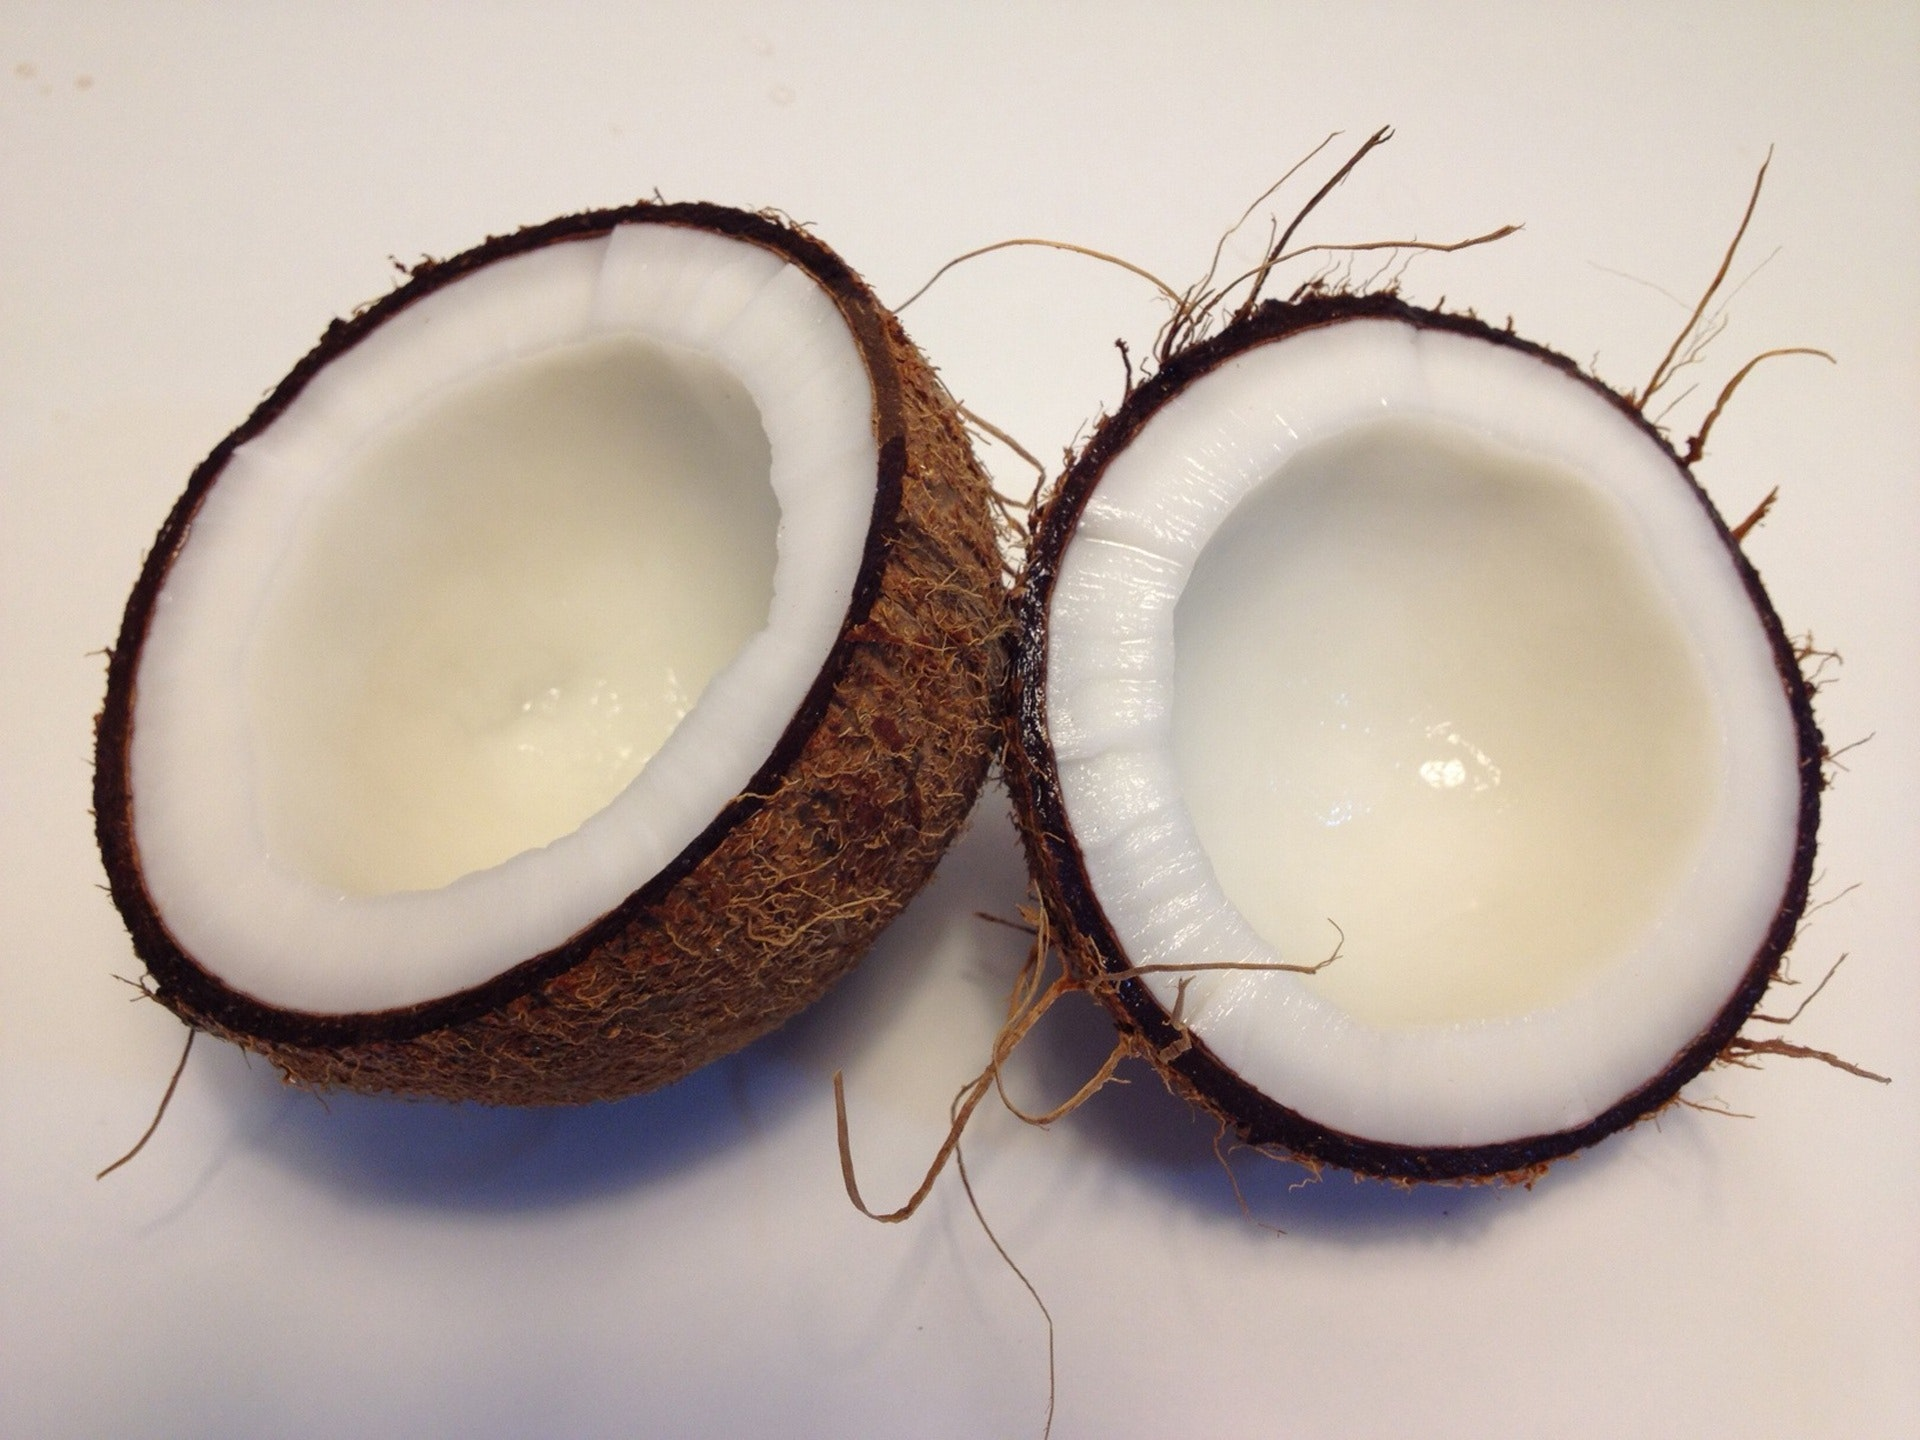 coconut-food-221074.jpg